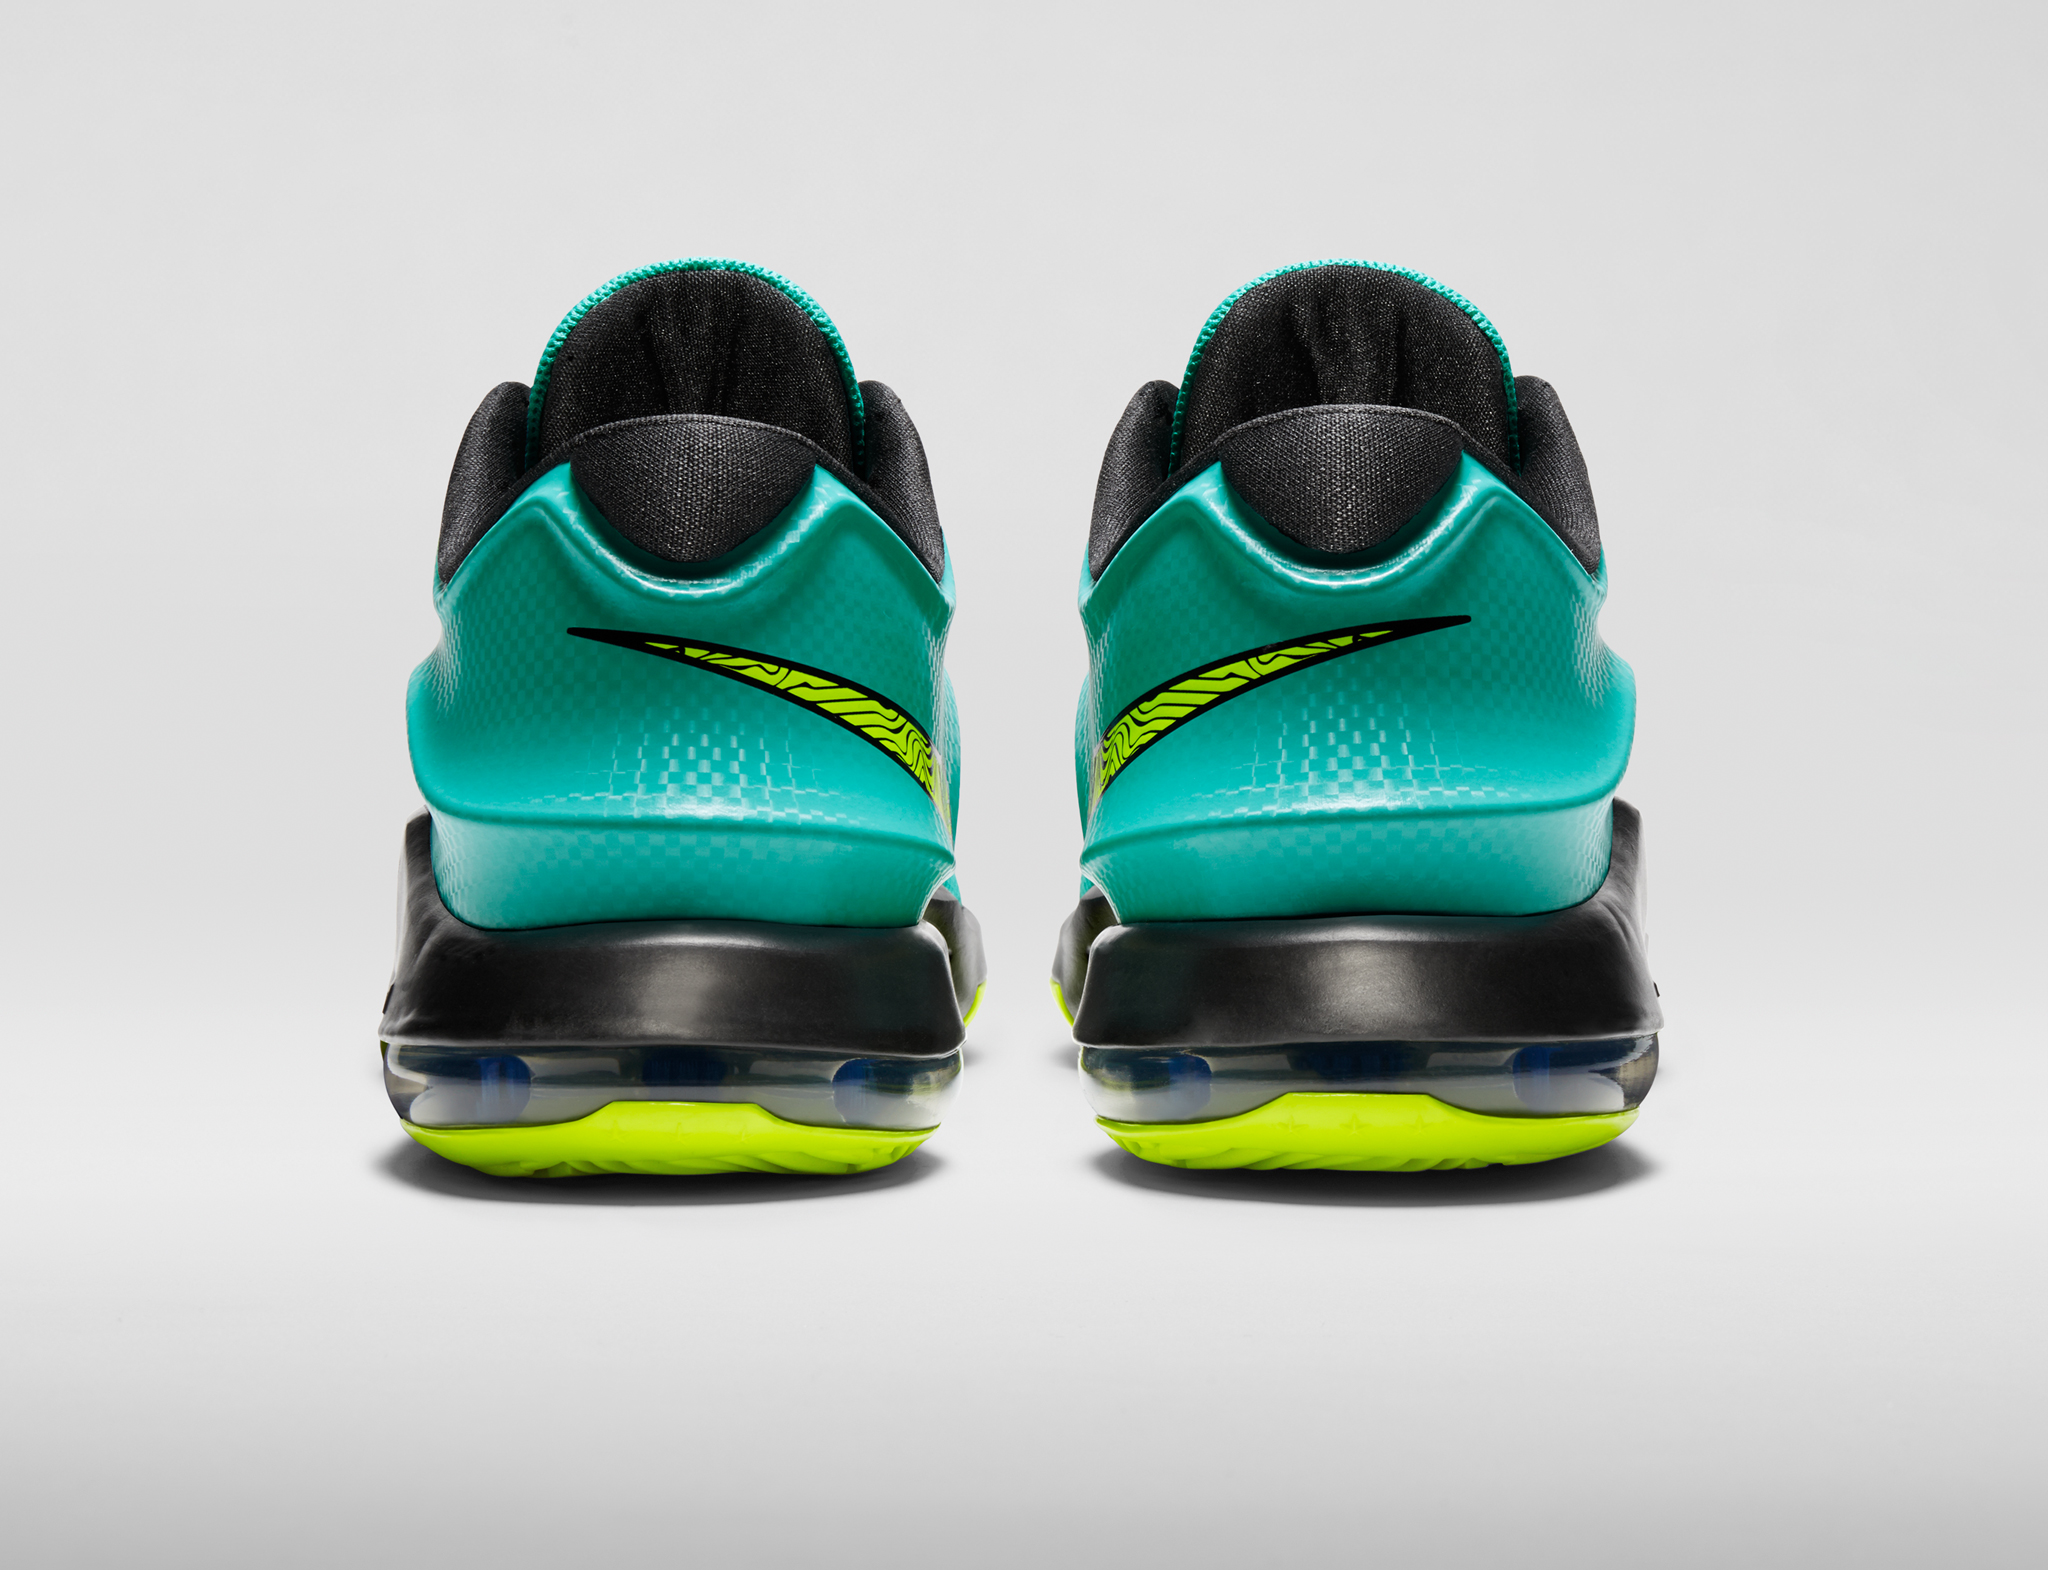 best service a497f 2e328 KD7 Uprising Elevating to the Top - Nike News .